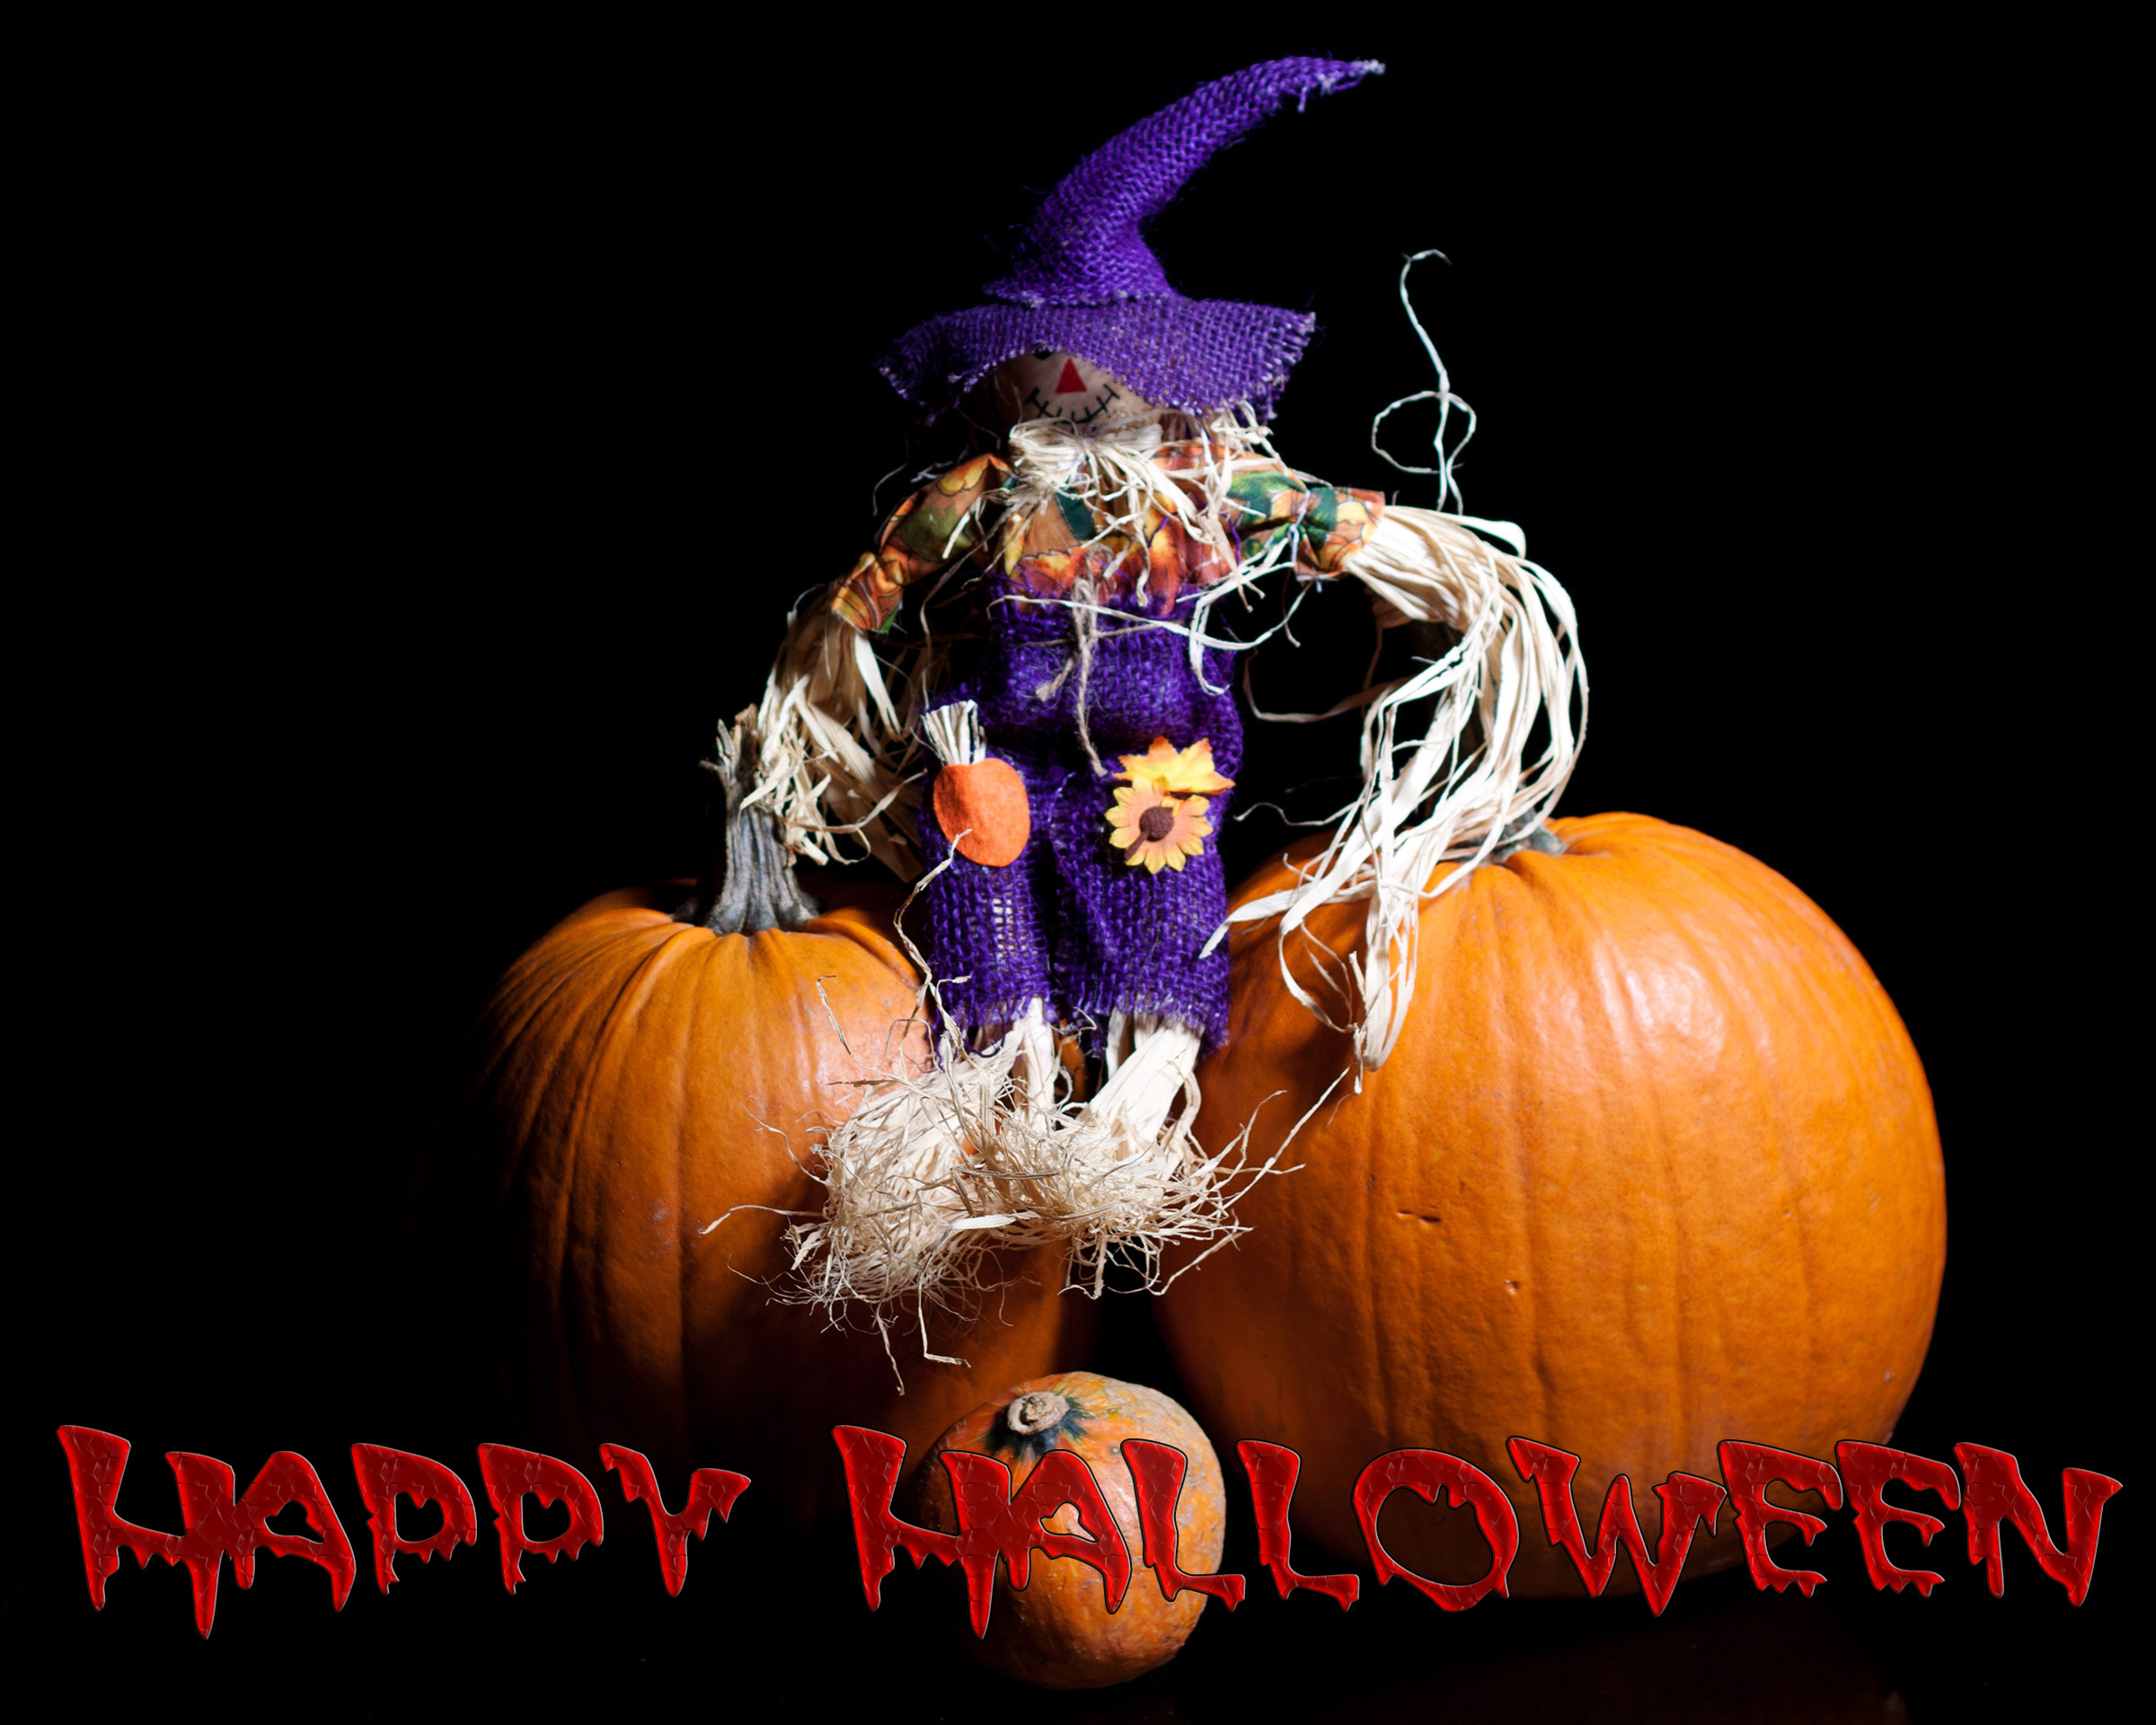 Halloween with Text, Autumn, Scarecrow, Lantern, Light, HQ Photo